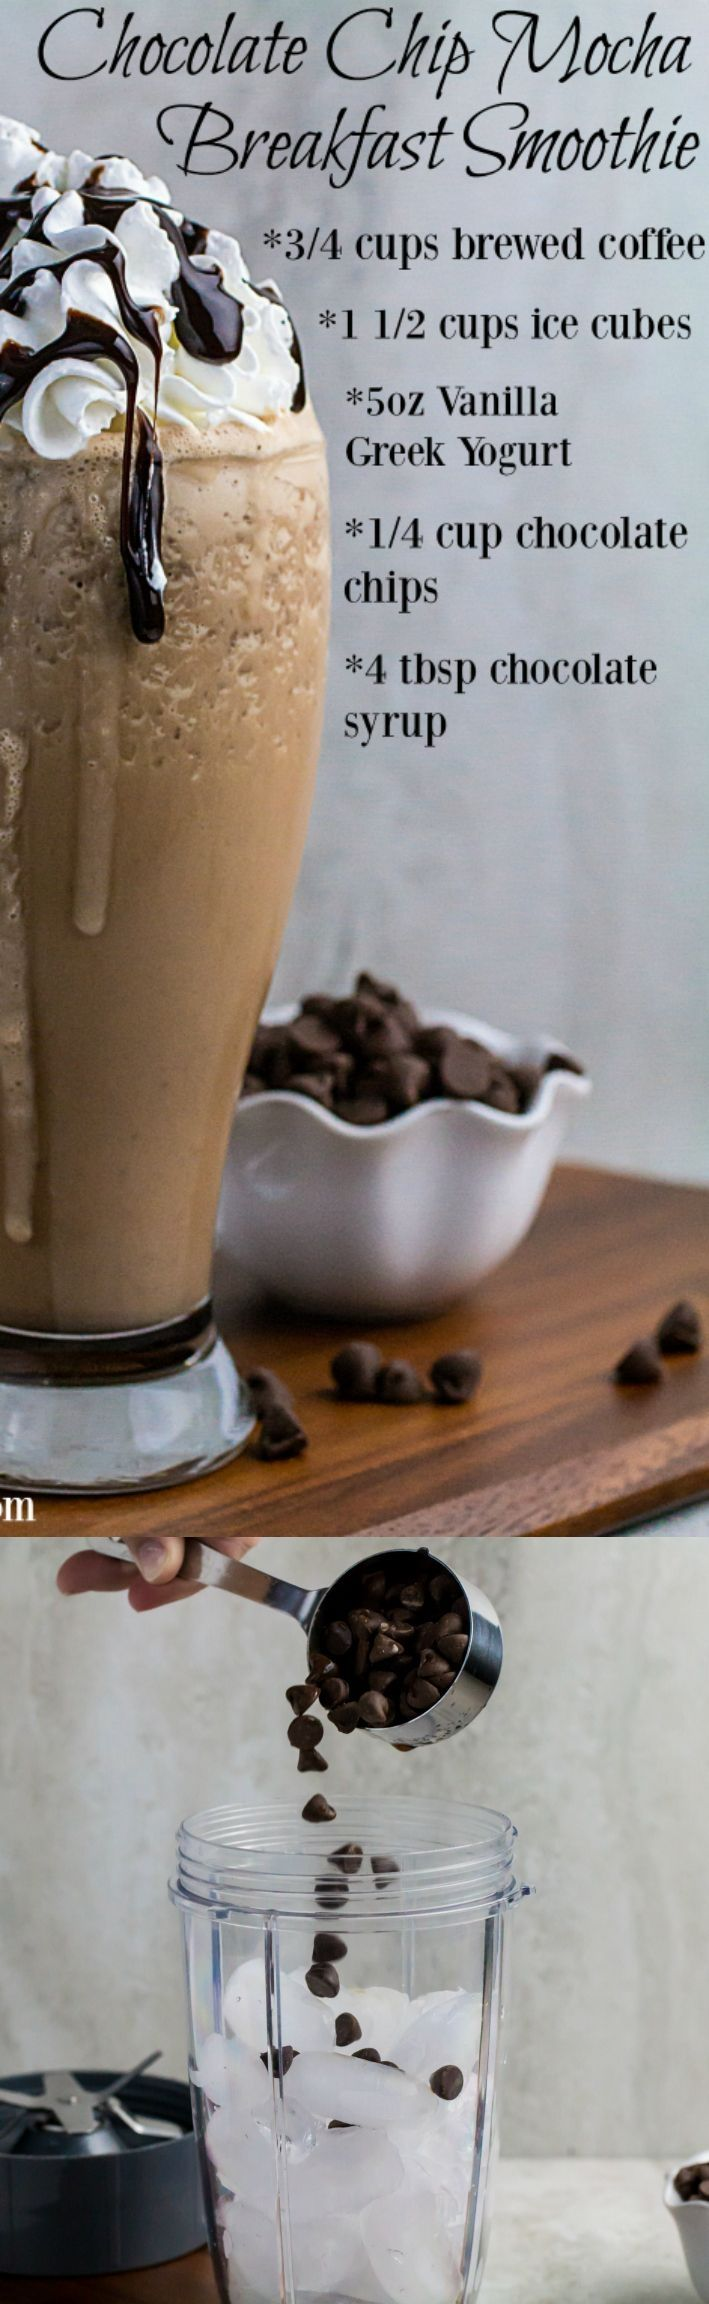 Click pin to get the recipe! Repin to save for later! Creamy vanilla greek yogurt, sweet chocolate chips, and ice combined with bold coffee to create the perfect Chocolate Chip Mocha Breakfast Smoothie. It's healthy protein and sweet, sweet caffeine rolled all into one tasty morning treat. This is seriously the easiest breakfast you'll make all week! Gluten free! #weightloss